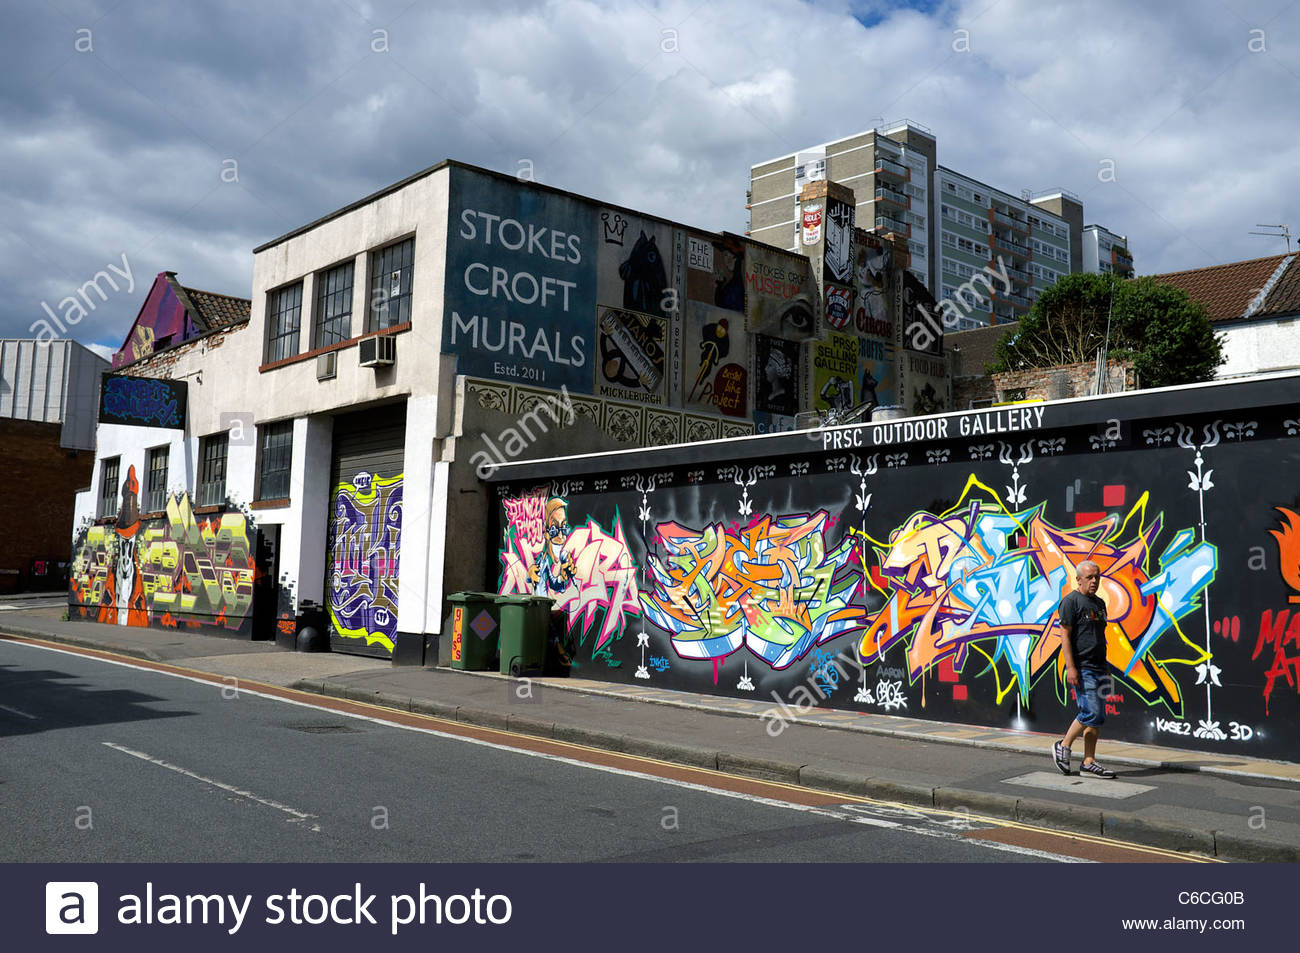 Murals in the Stoke's Croft area of Bristol, UK. - Stock Image